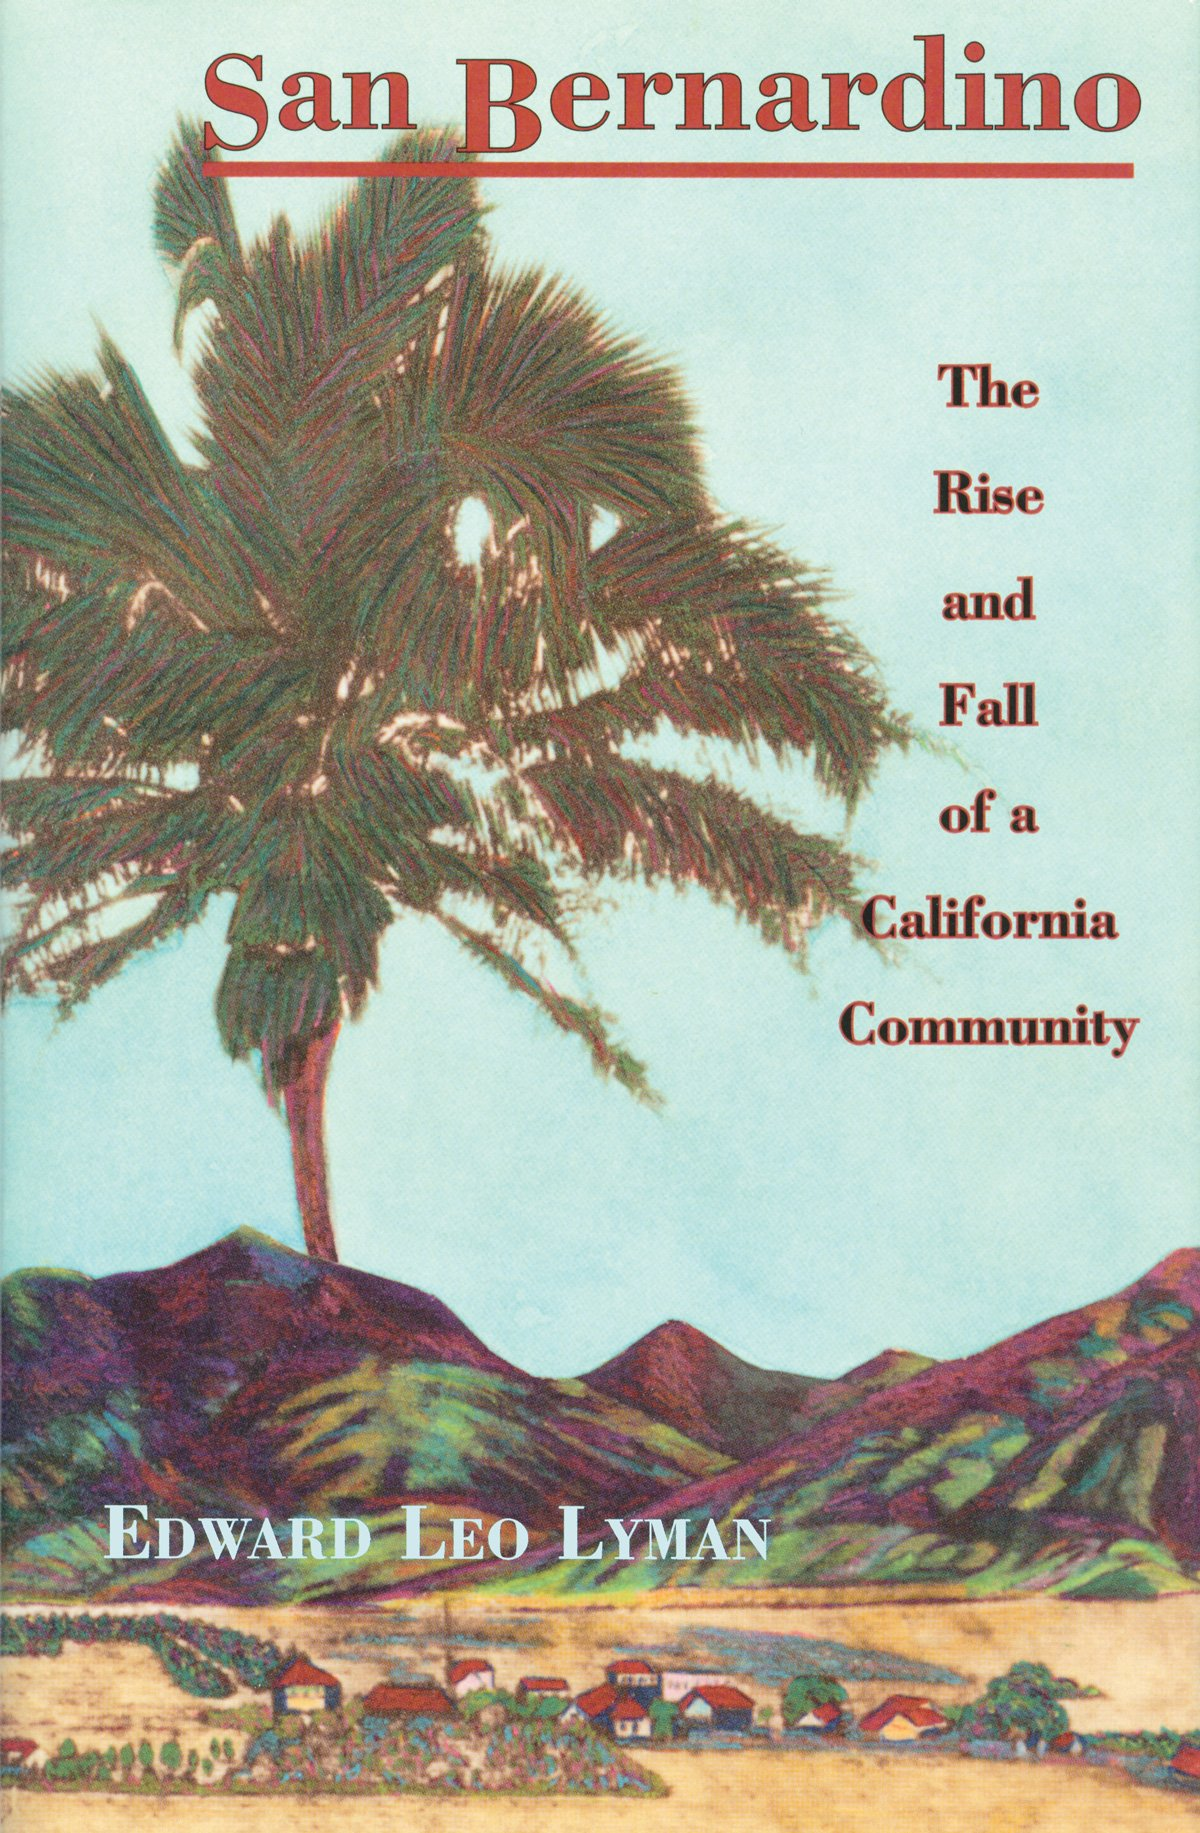 SAN BERNARDINO - The Rise and Fall of a California Community, Lyman, Edward Leo